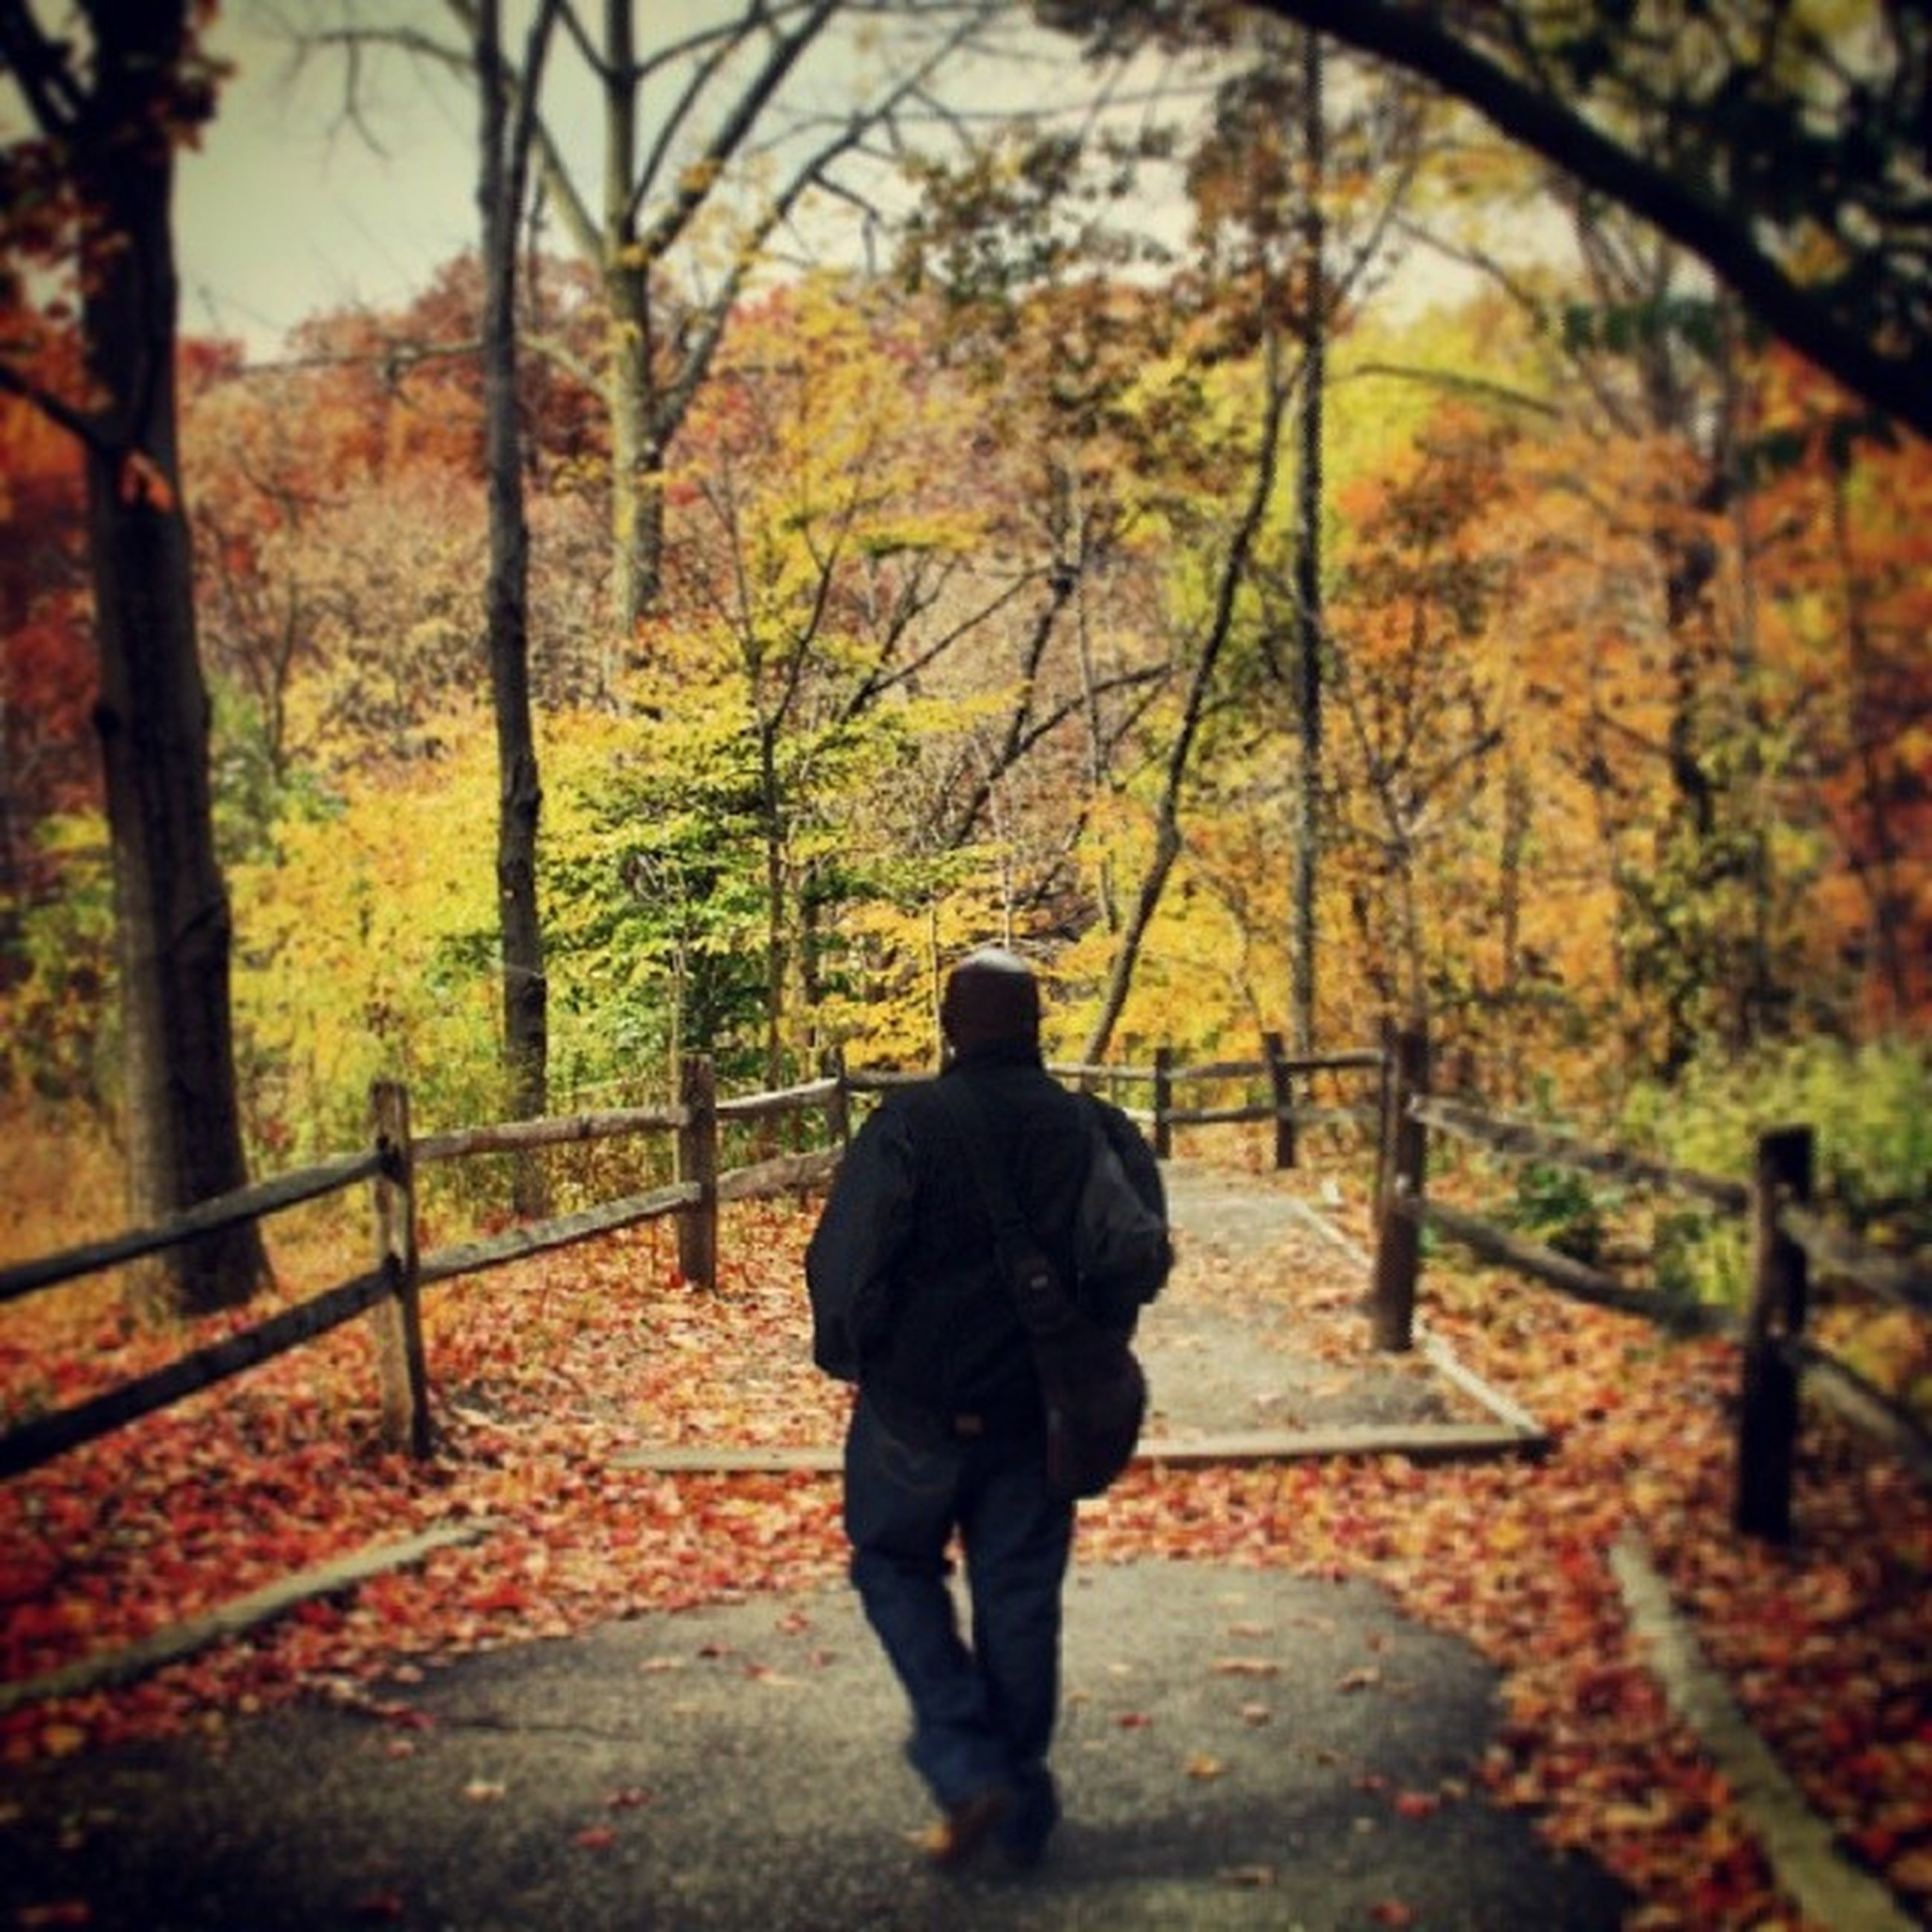 tree, rear view, autumn, season, change, lifestyles, full length, men, leisure activity, forest, walking, tree trunk, person, nature, standing, orange color, casual clothing, tranquility